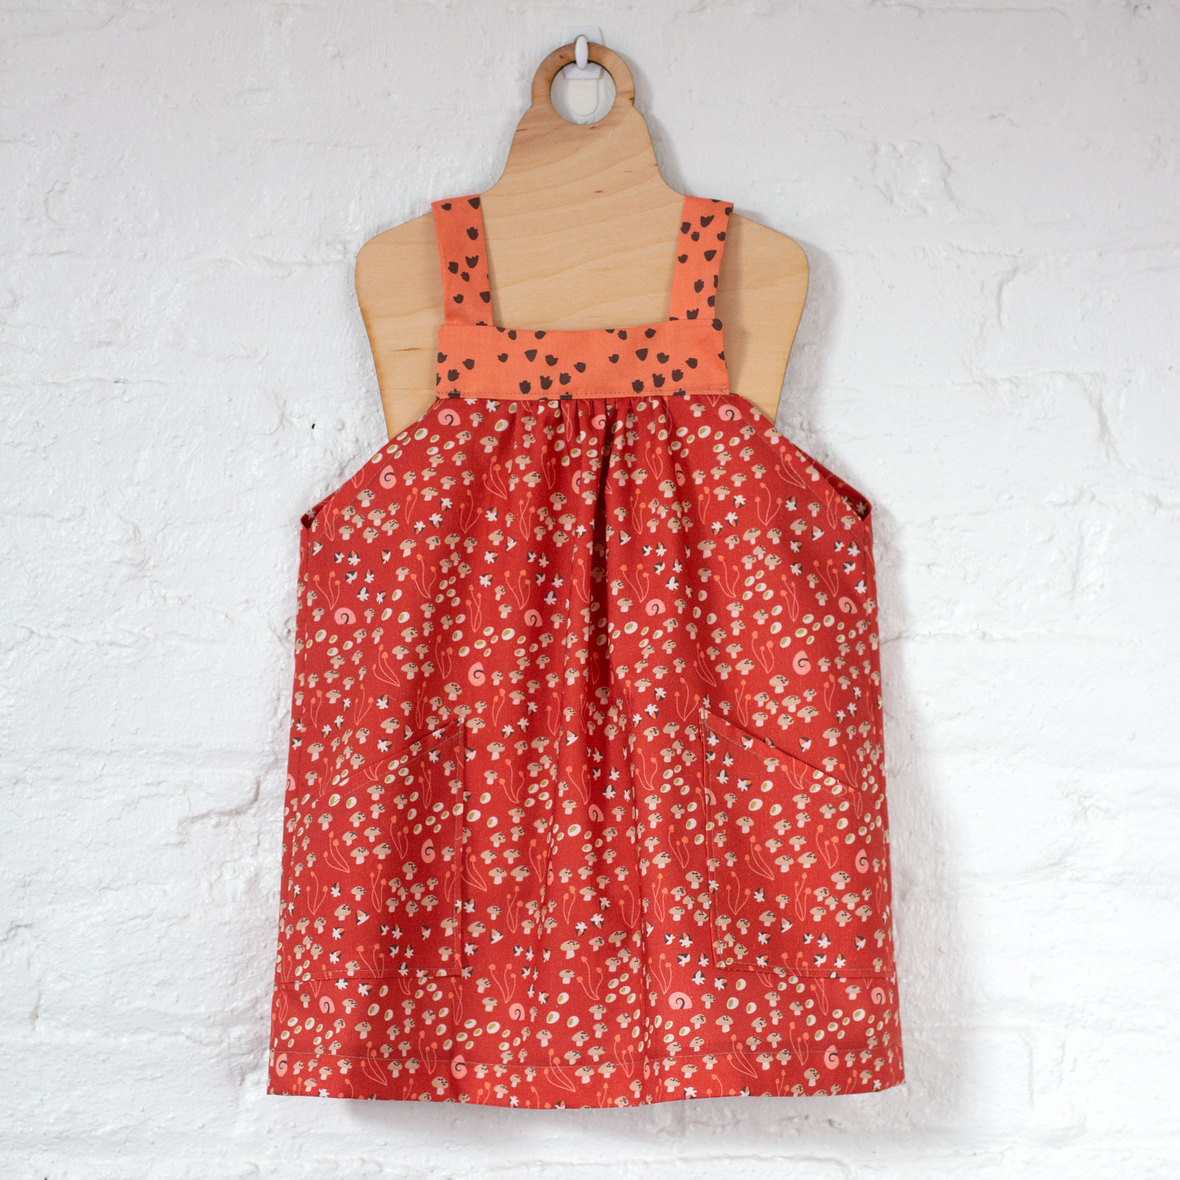 underwood-pinafore- pattern by indygo junction